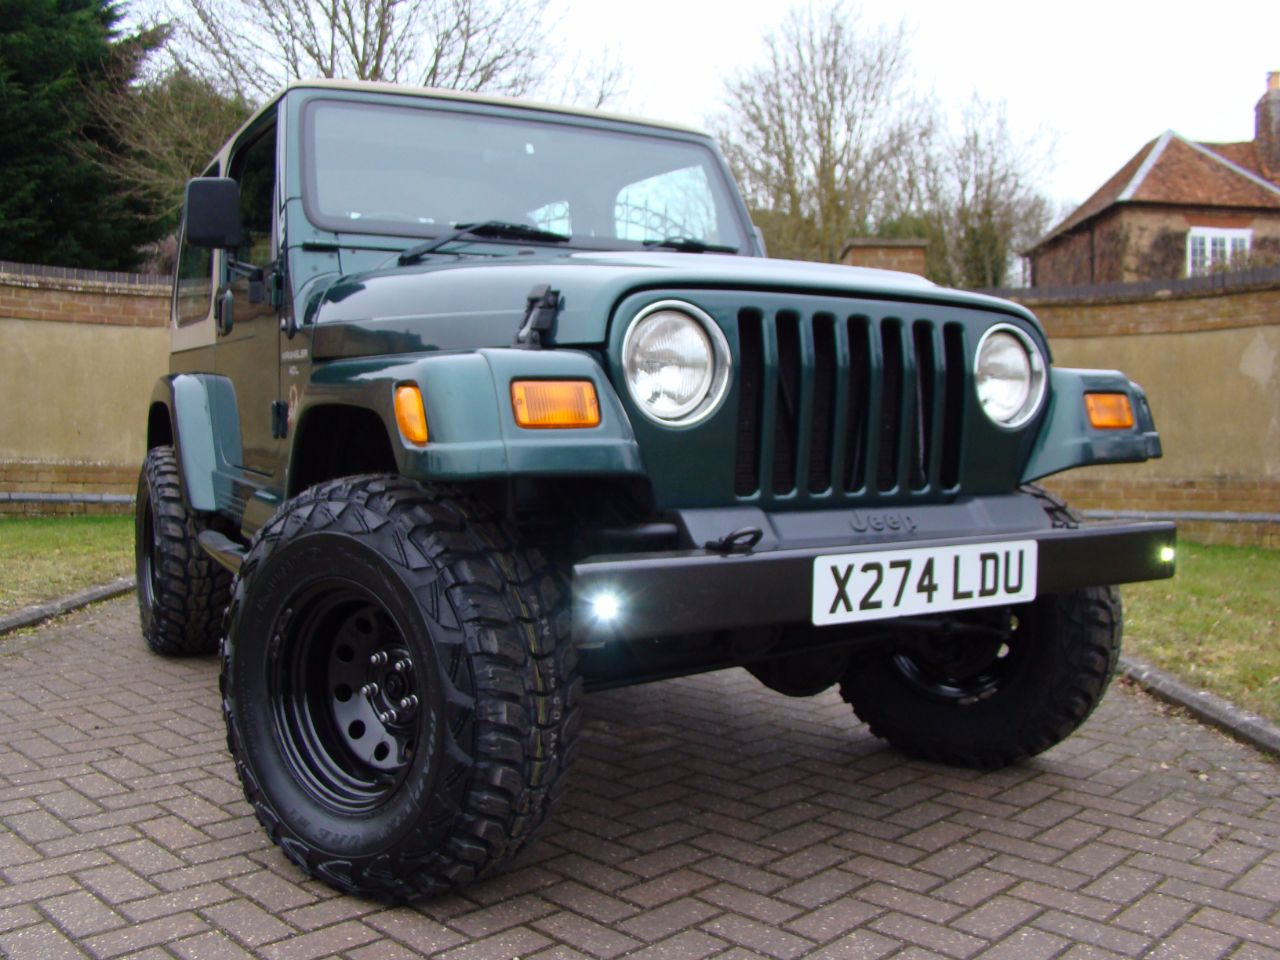 jeep wrangler 40 sahara 2dr auto for sale in leighton buzzard bedfordshire claridges cars. Black Bedroom Furniture Sets. Home Design Ideas